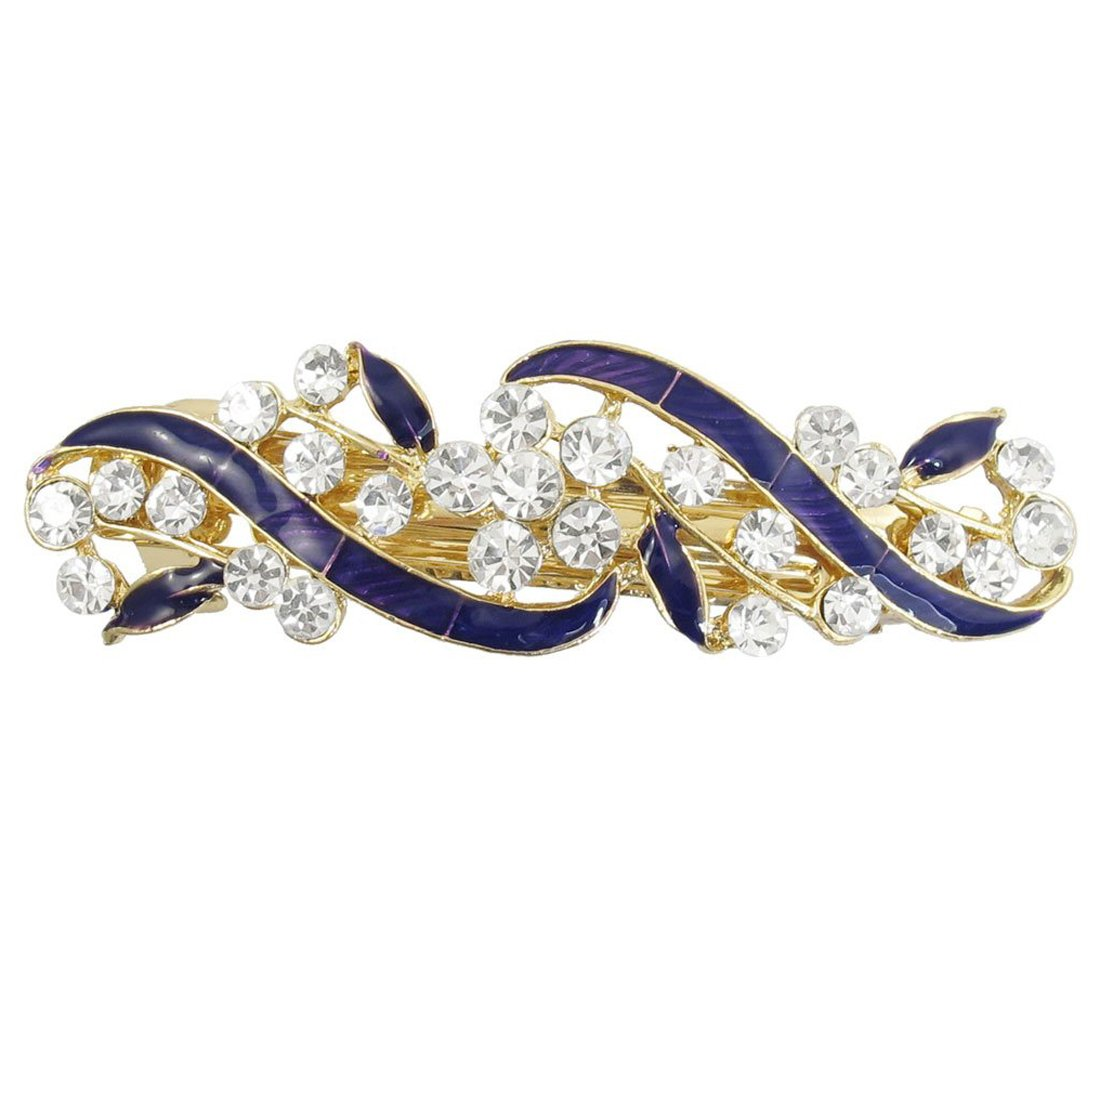 Gold Tone French Clip Faux Crystal Inlaid Purple Hairclip Barrette 9611